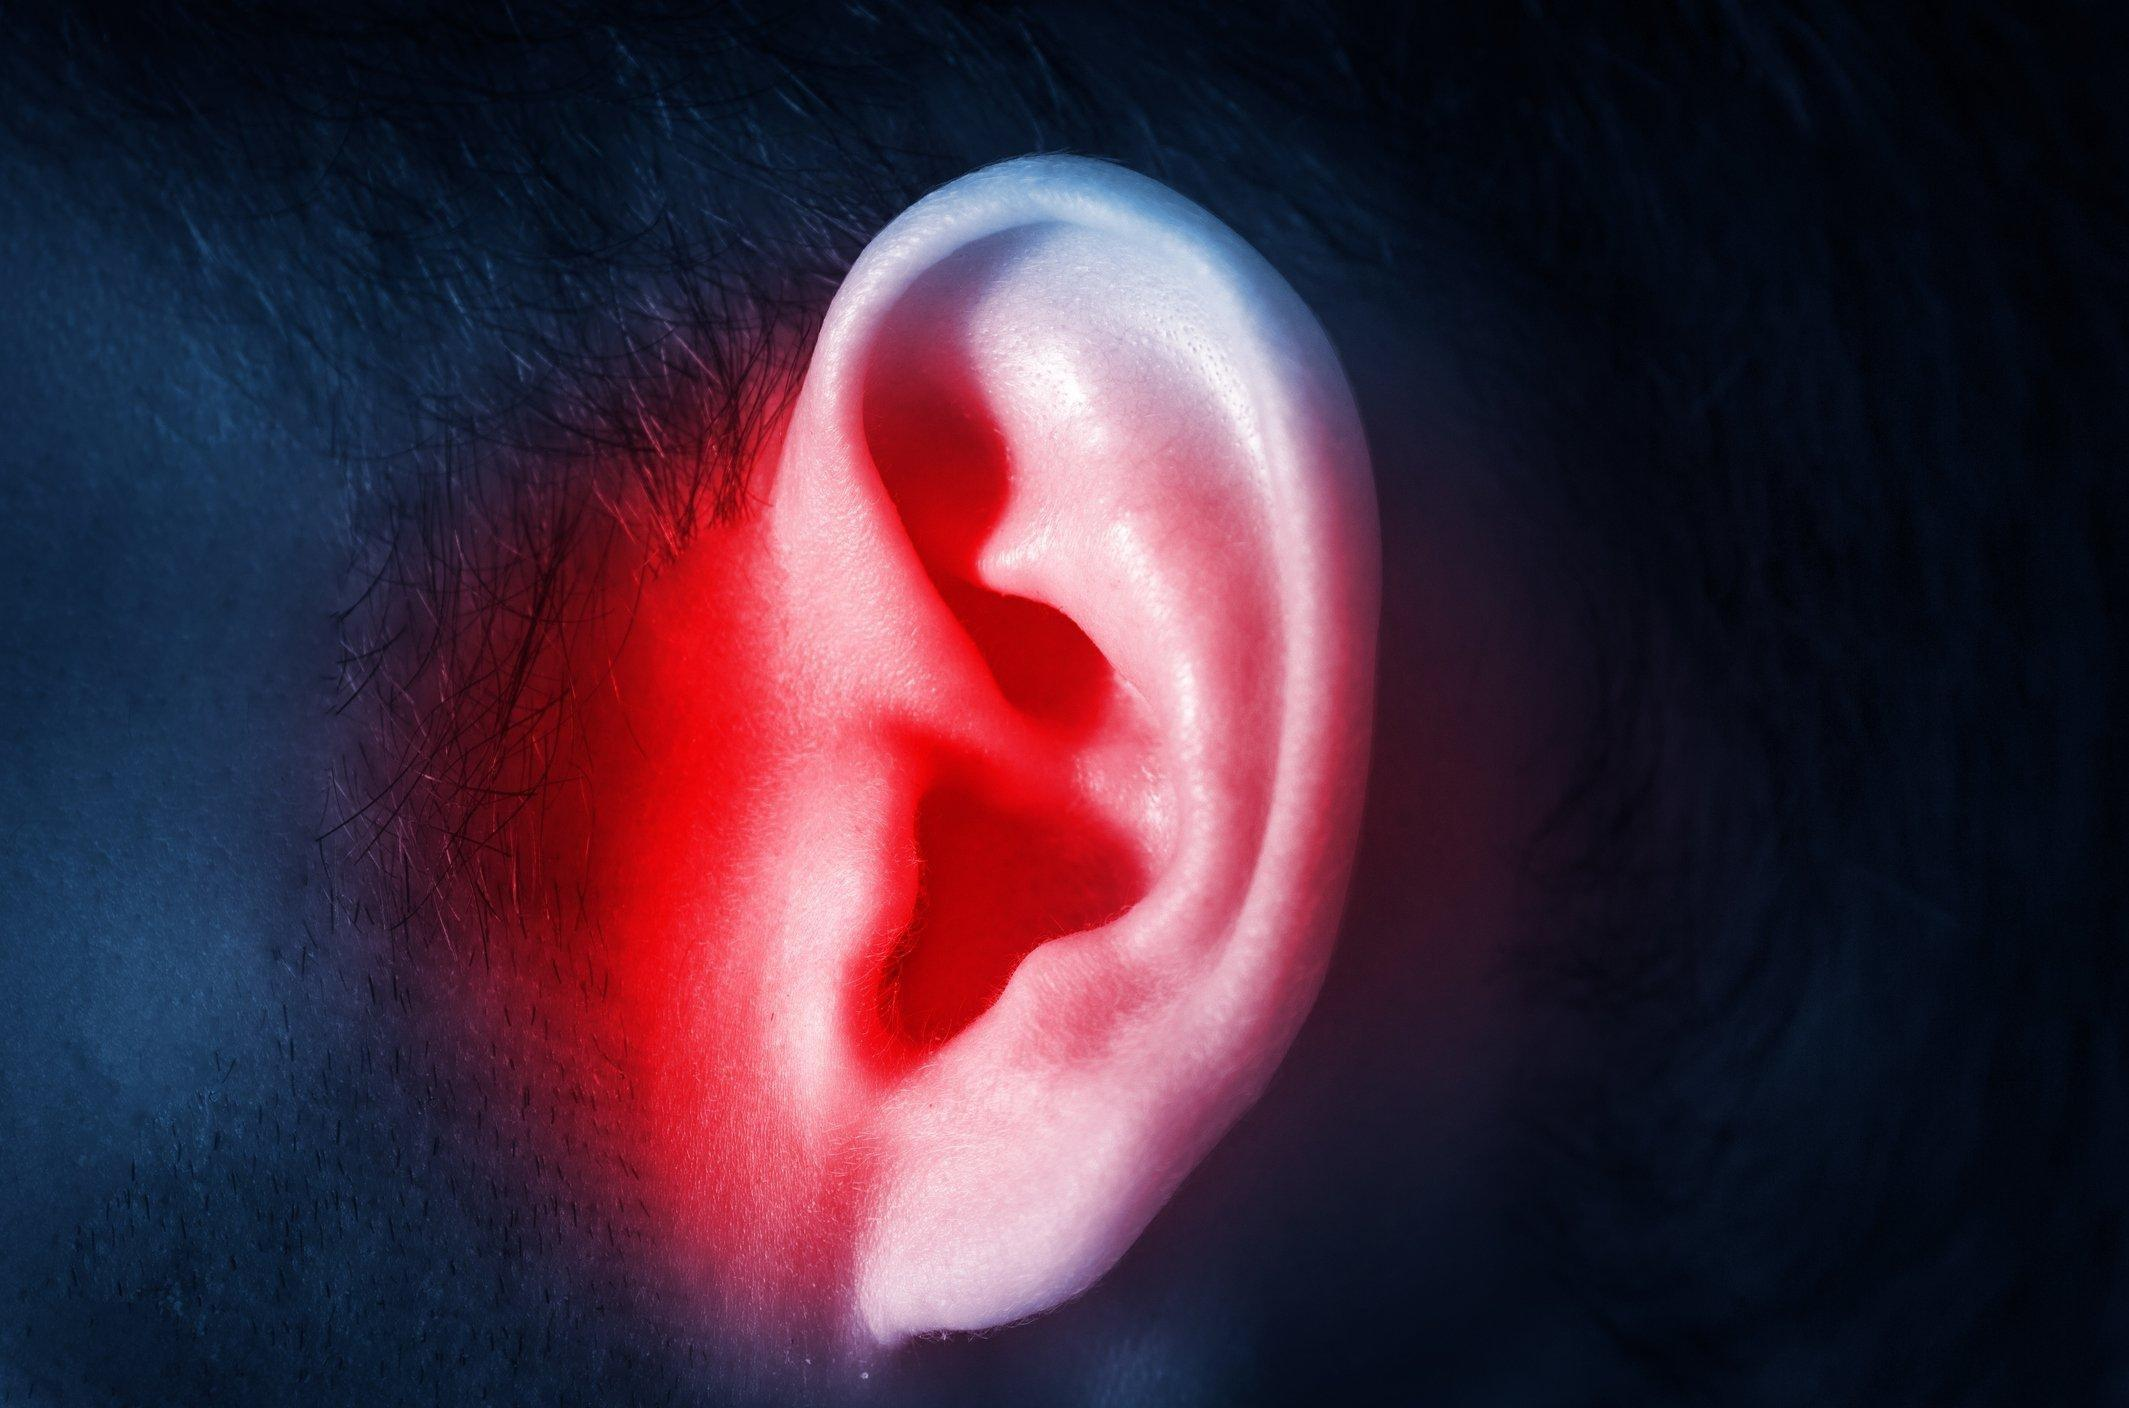 Tinnitus: 5 Strange Reasons For Ringing Ears